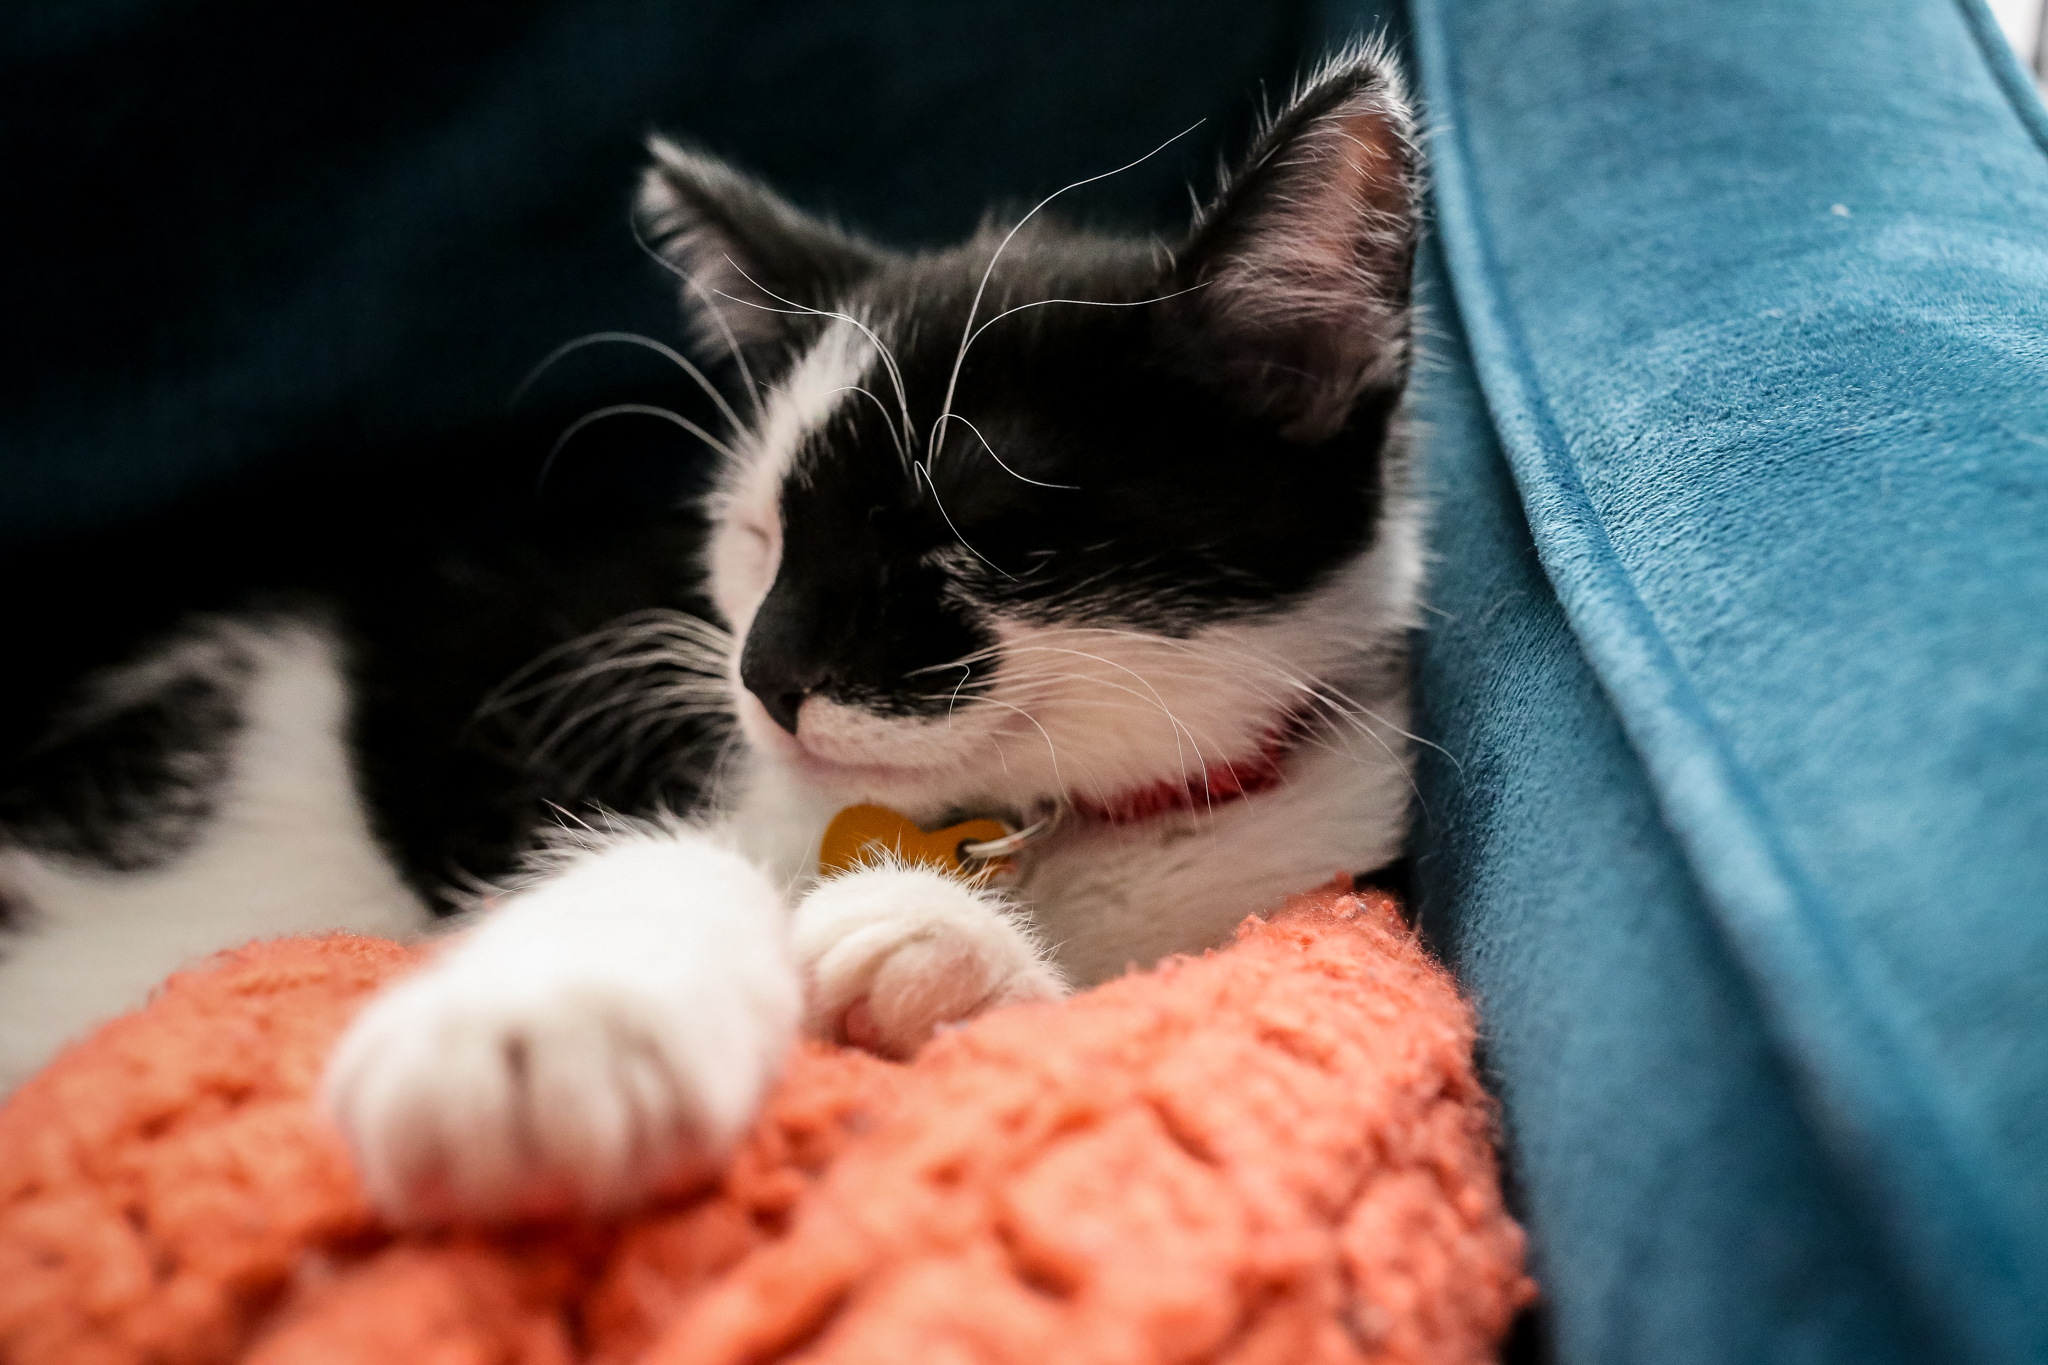 Newly adopted kitten asleep on the couch in his new home in Macungie, PA. Taken during a day in the life photo session by Lehigh Valley photographer Jen Grima.